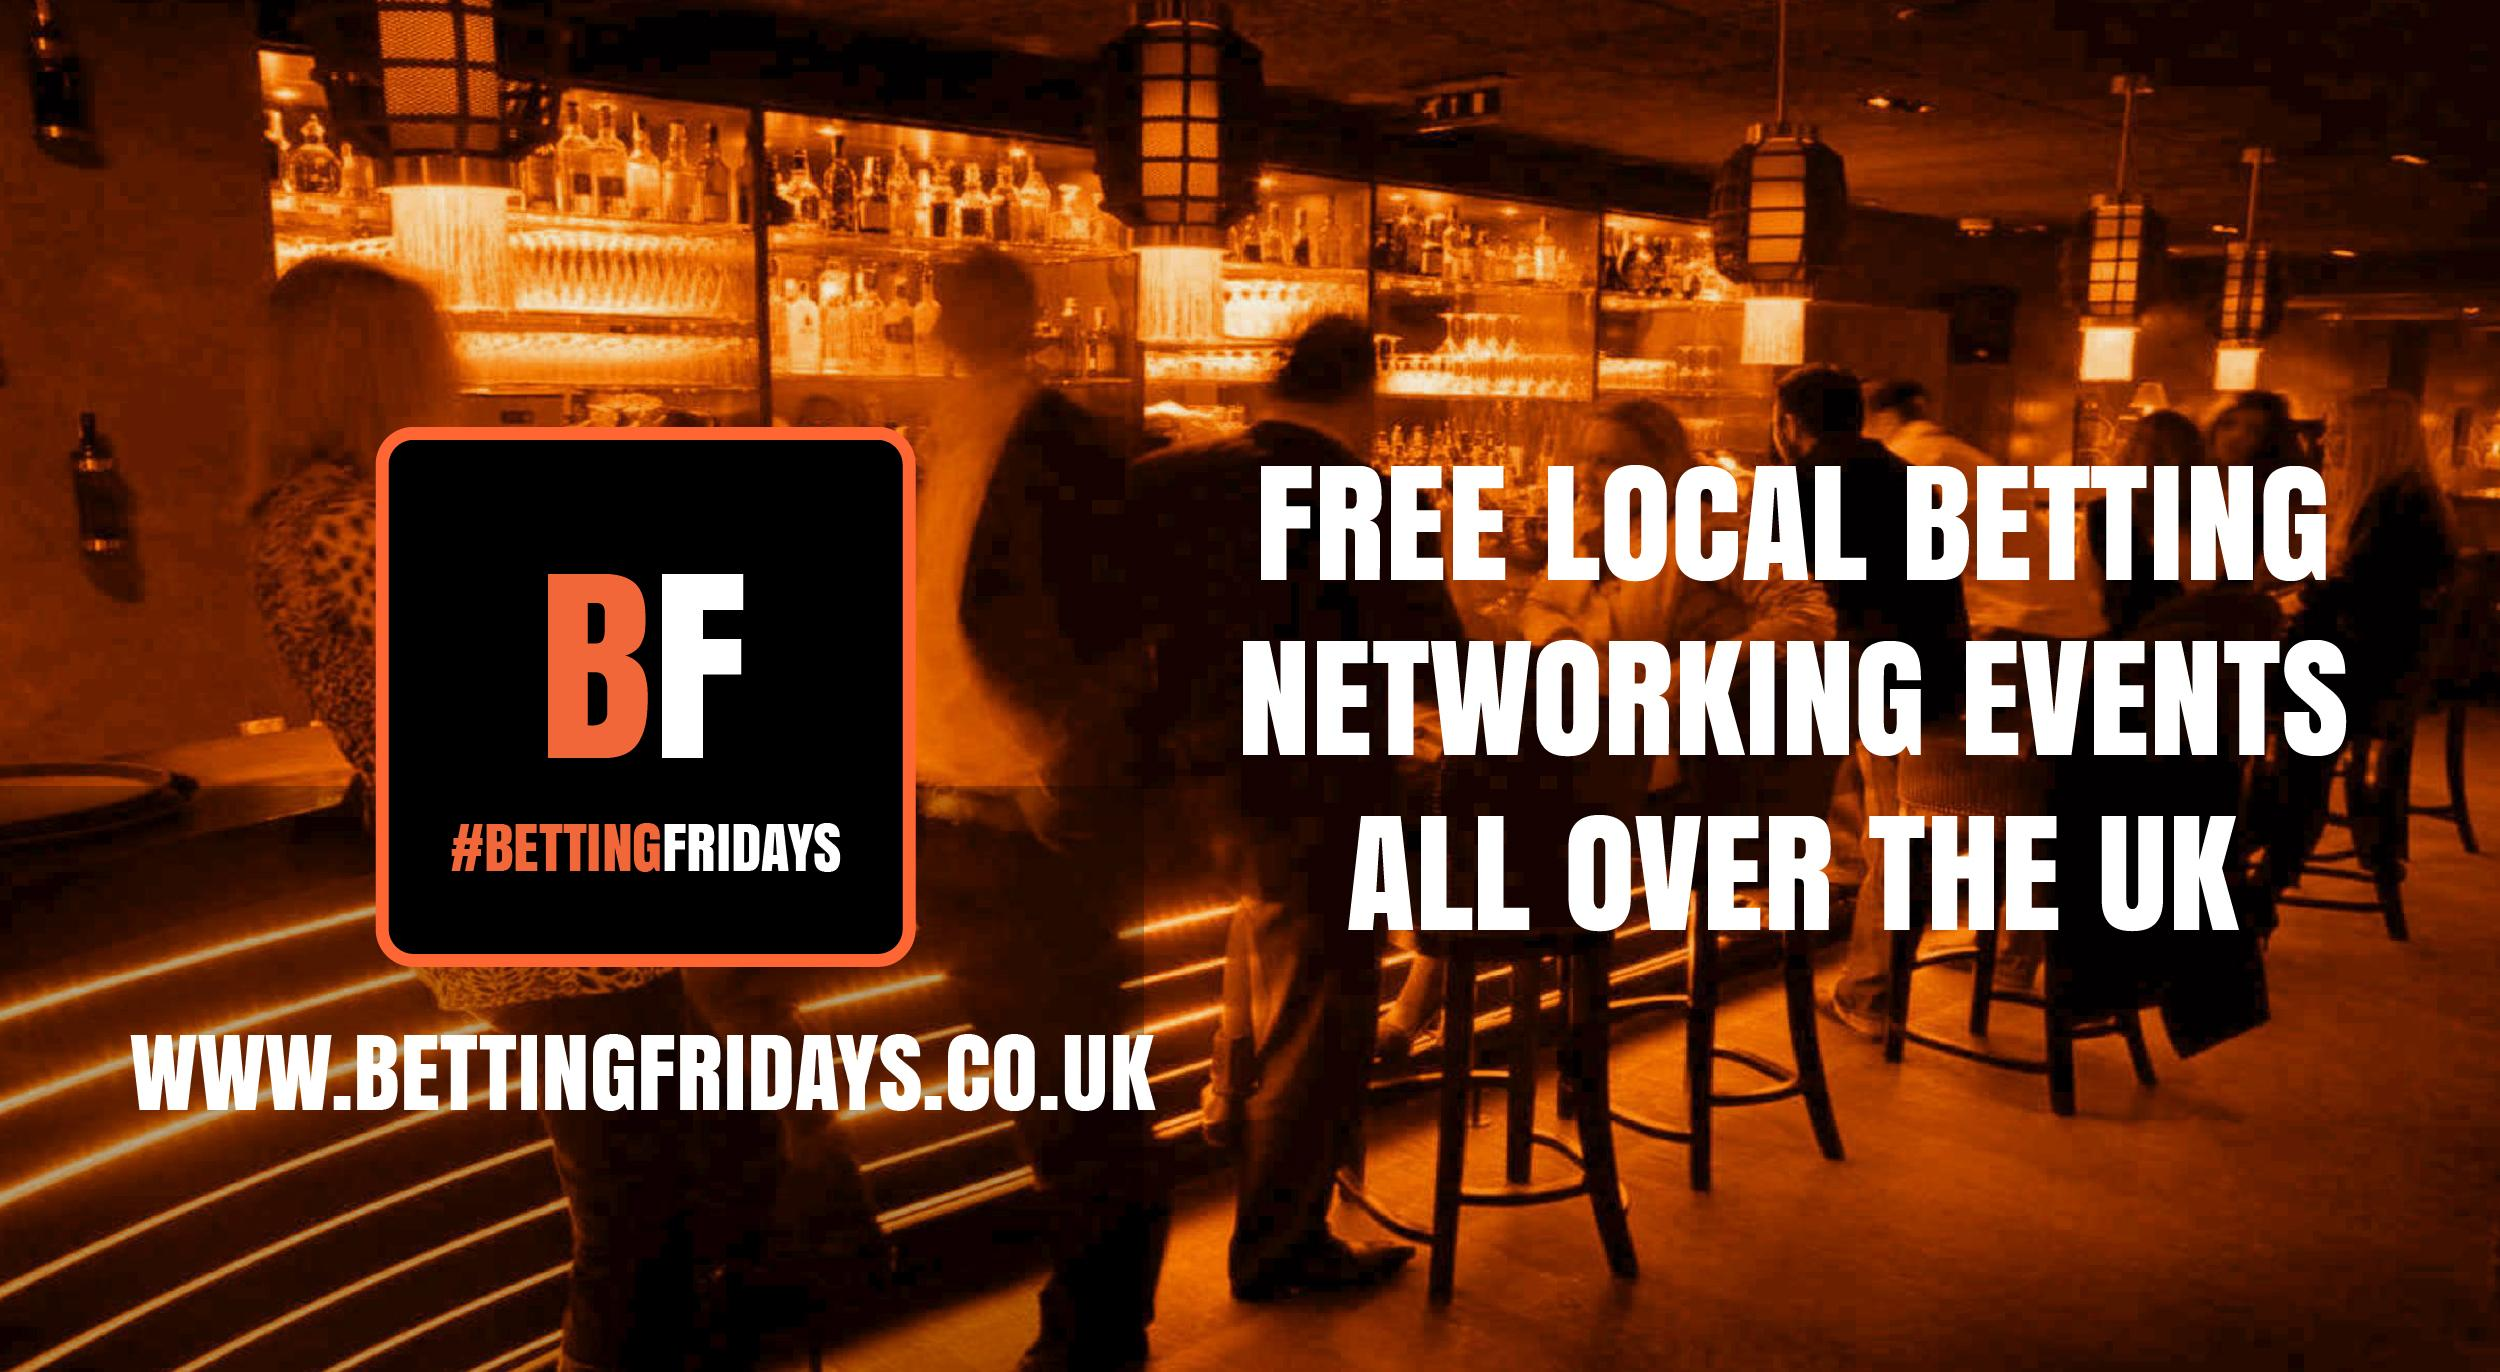 Betting Fridays! Free betting networking event in Rotherham